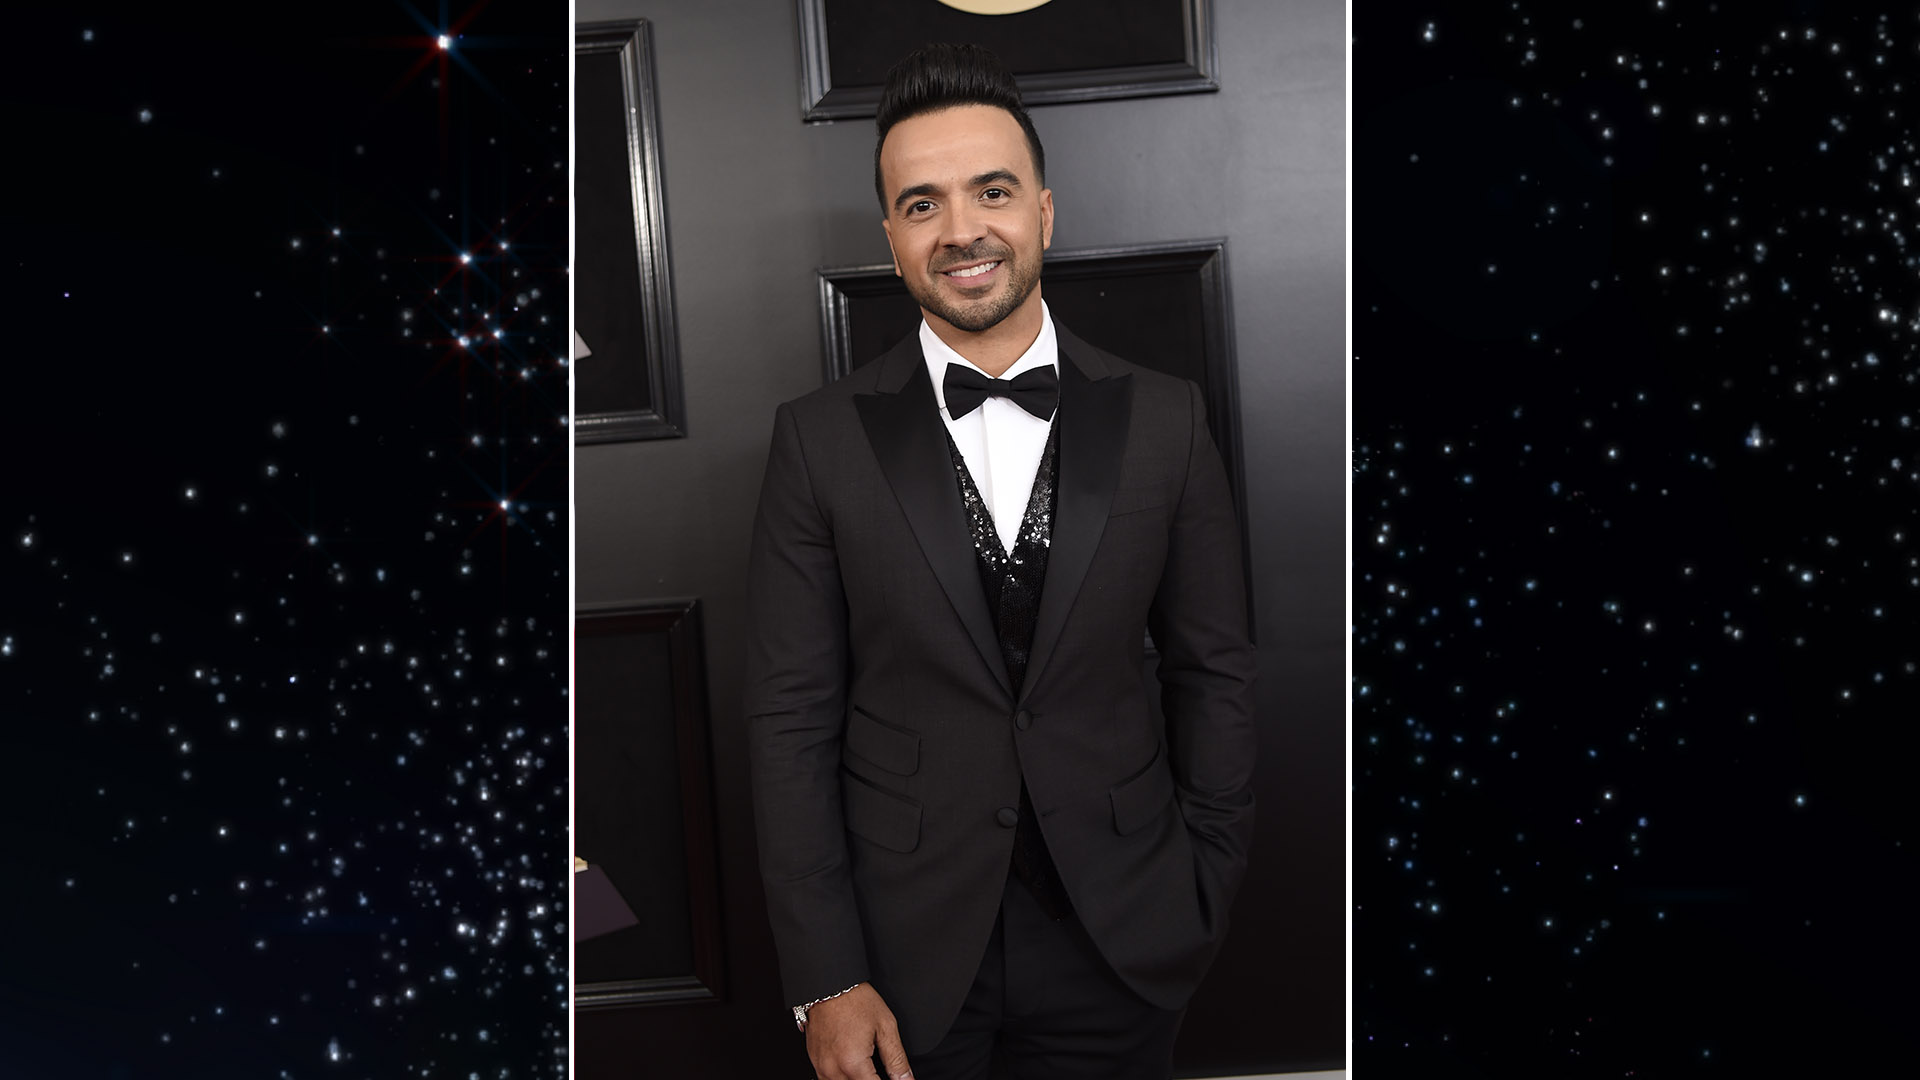 Luis Fonsi looks cool and collected before heating up the stage at Madison Square Garden.